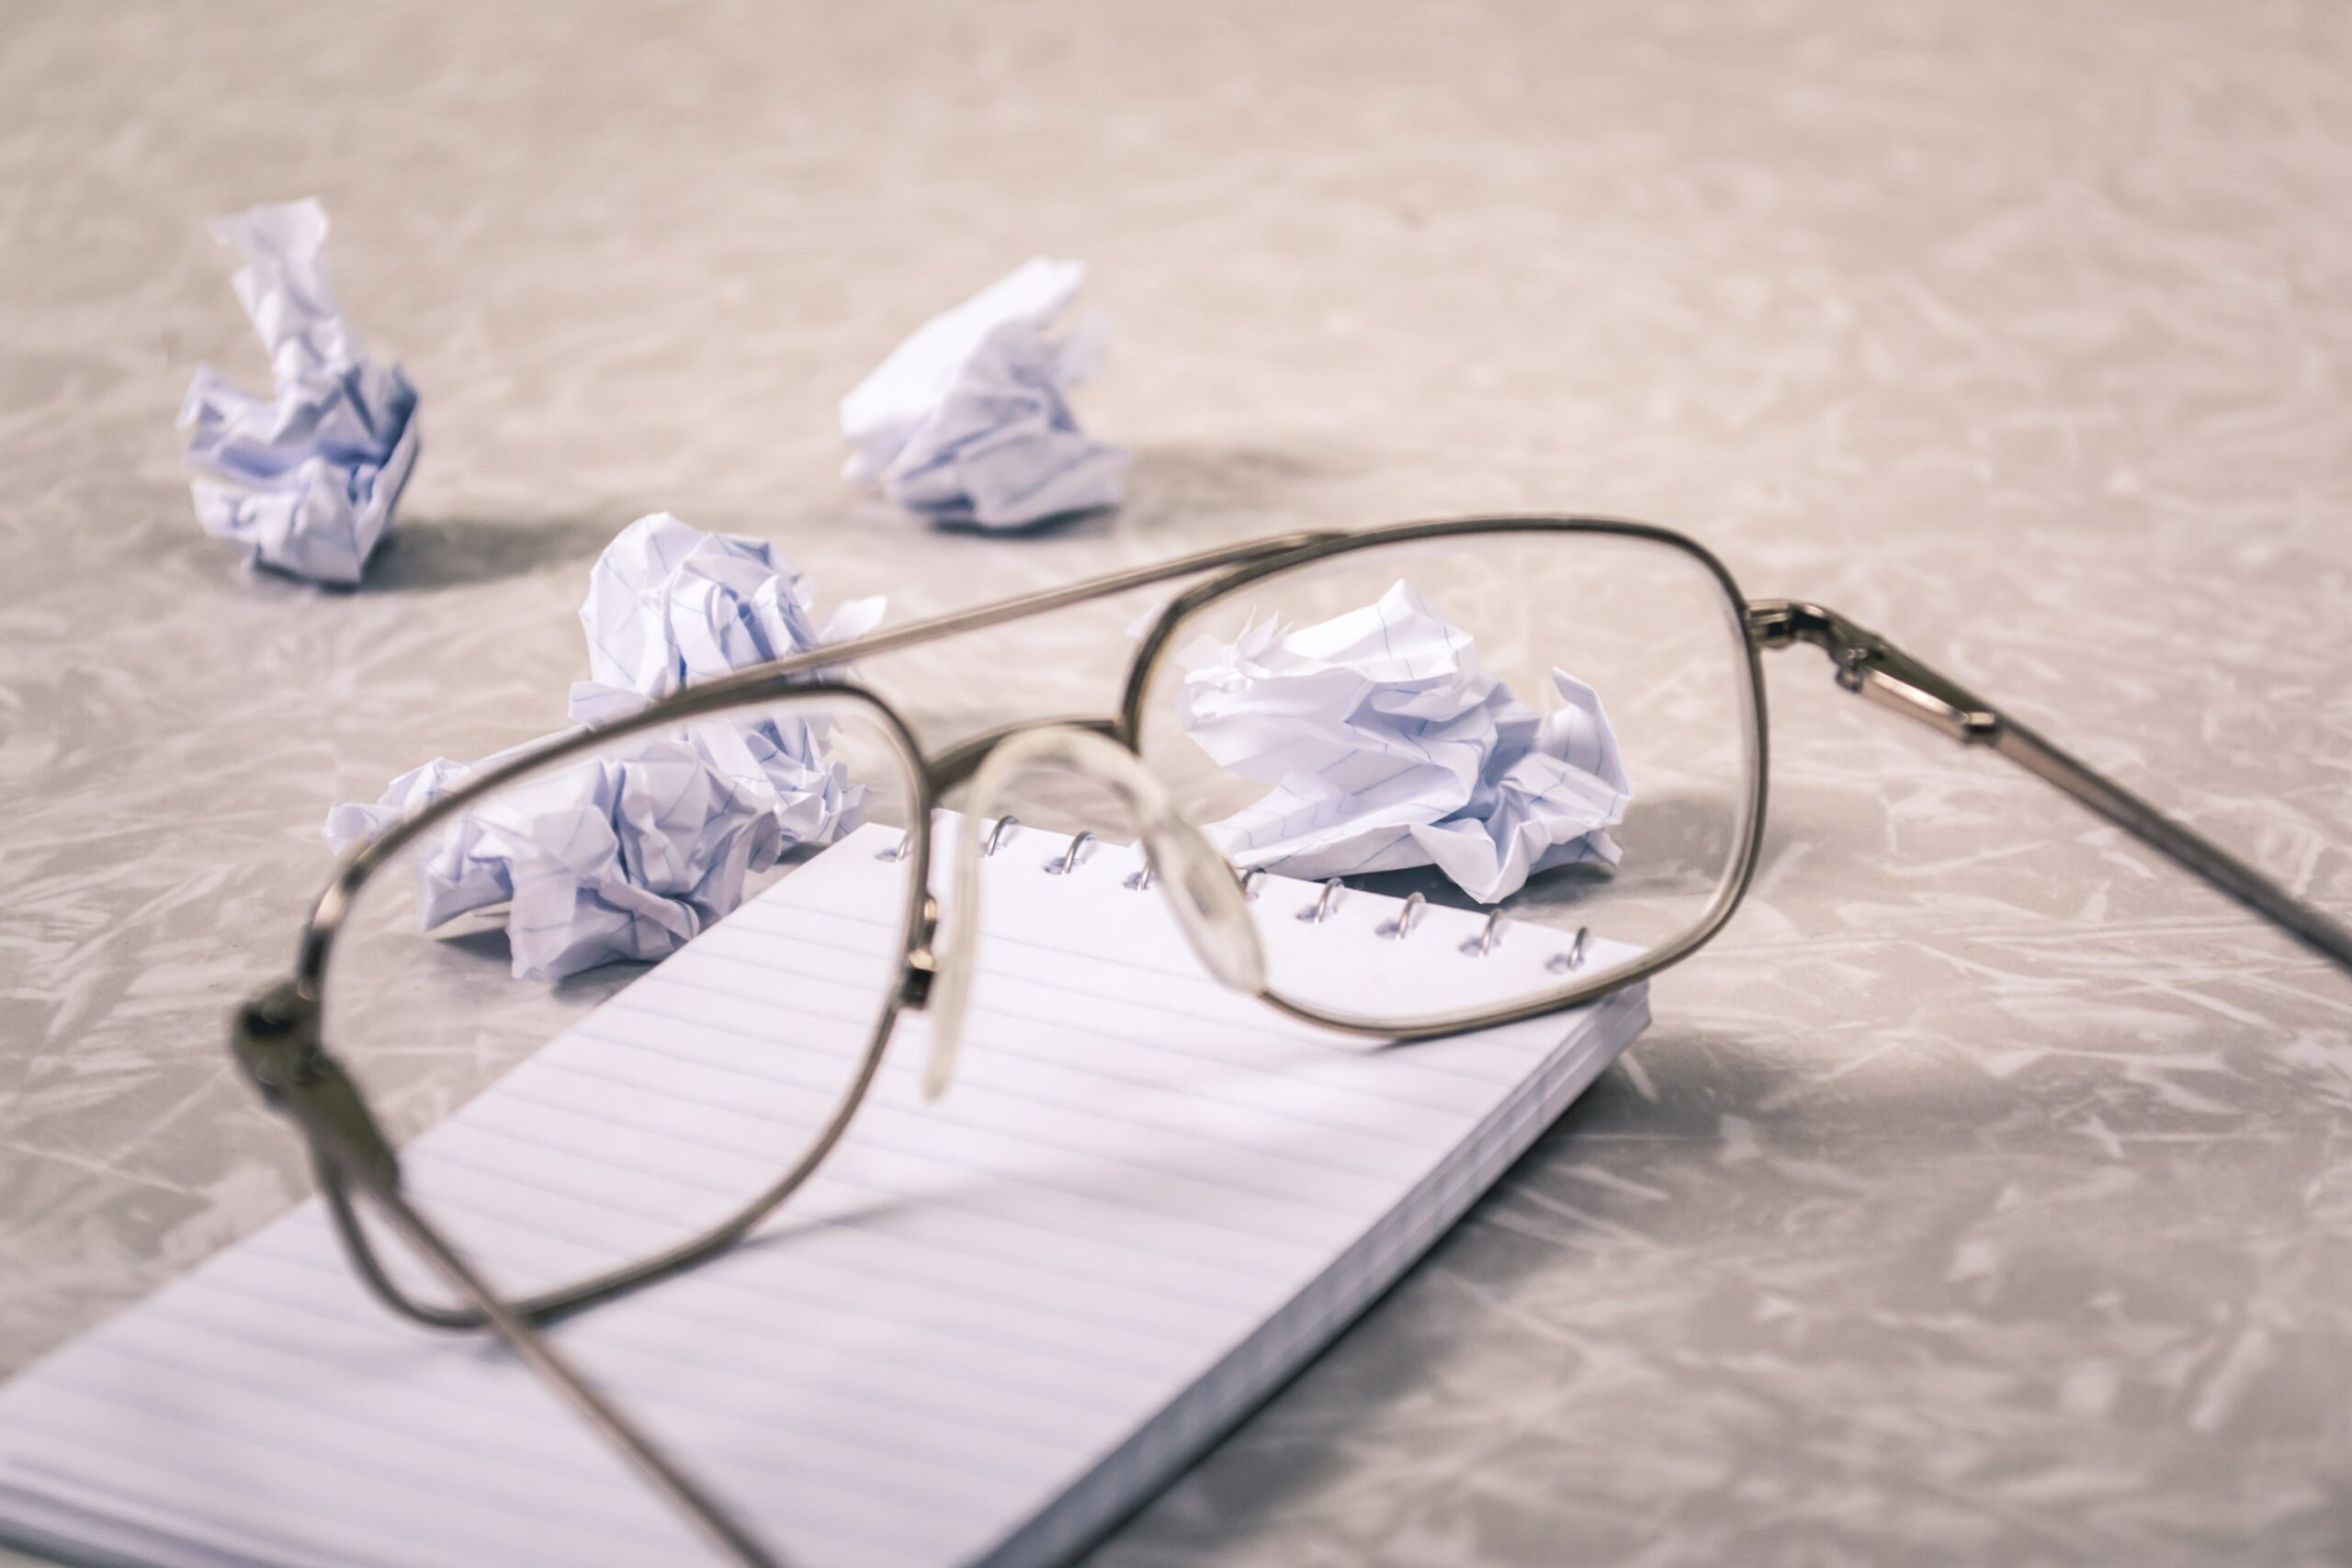 glasses sitting on top of white notepad with crumpled papers past them